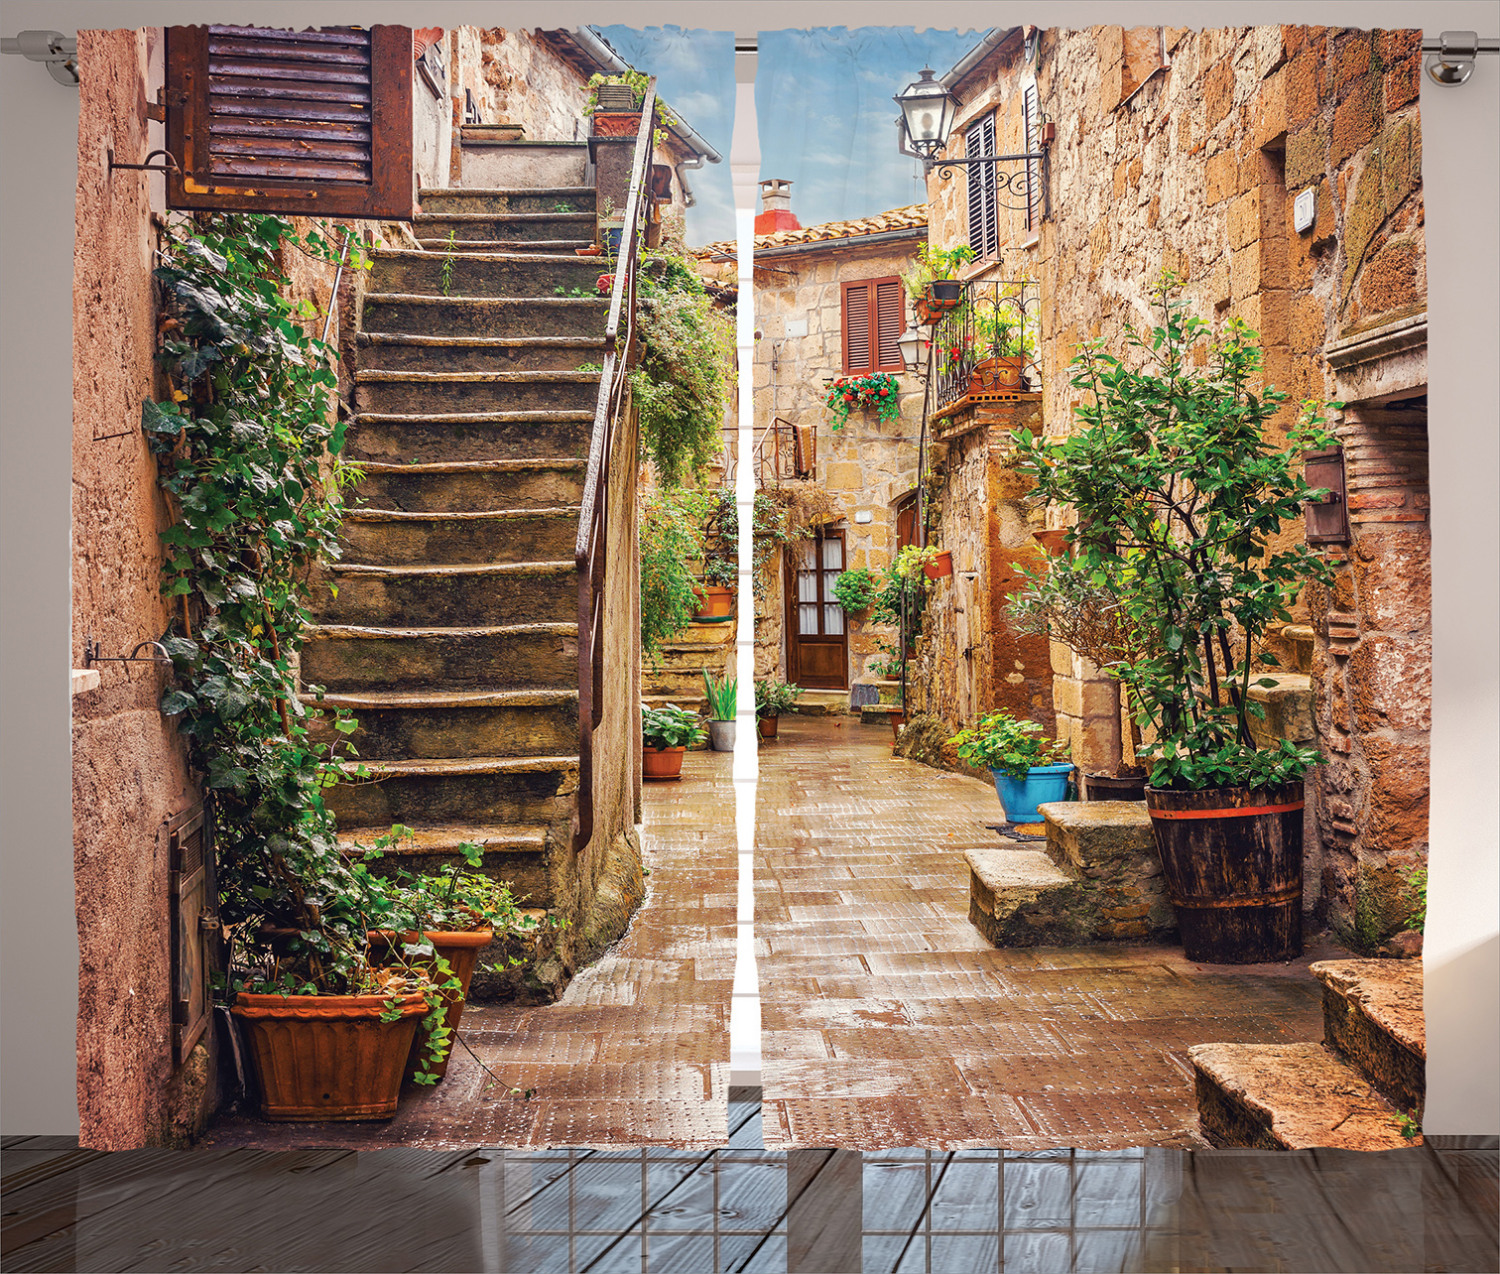 8x12 FT Vinyl Photography Background Backdrops,View of Old Mediterranean Street with Stone Rock Houses in Italian City Rural Print Background for Photo Backdrop Studio Props Photo Backdrop Wall